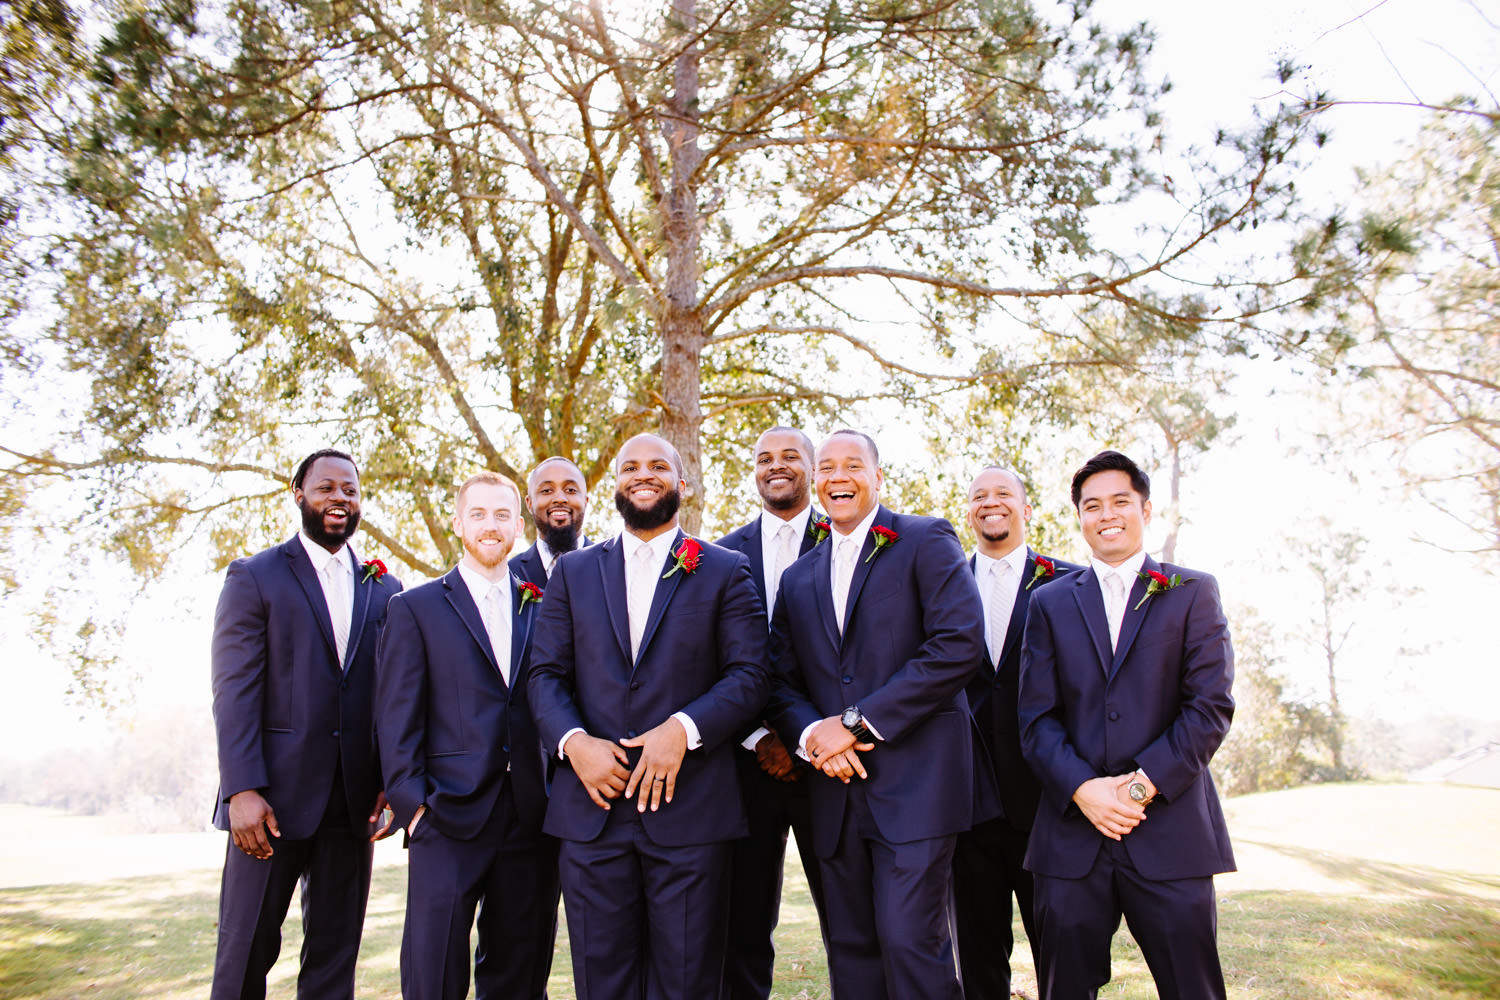 groomsmen in navy suits and rose boutonneires